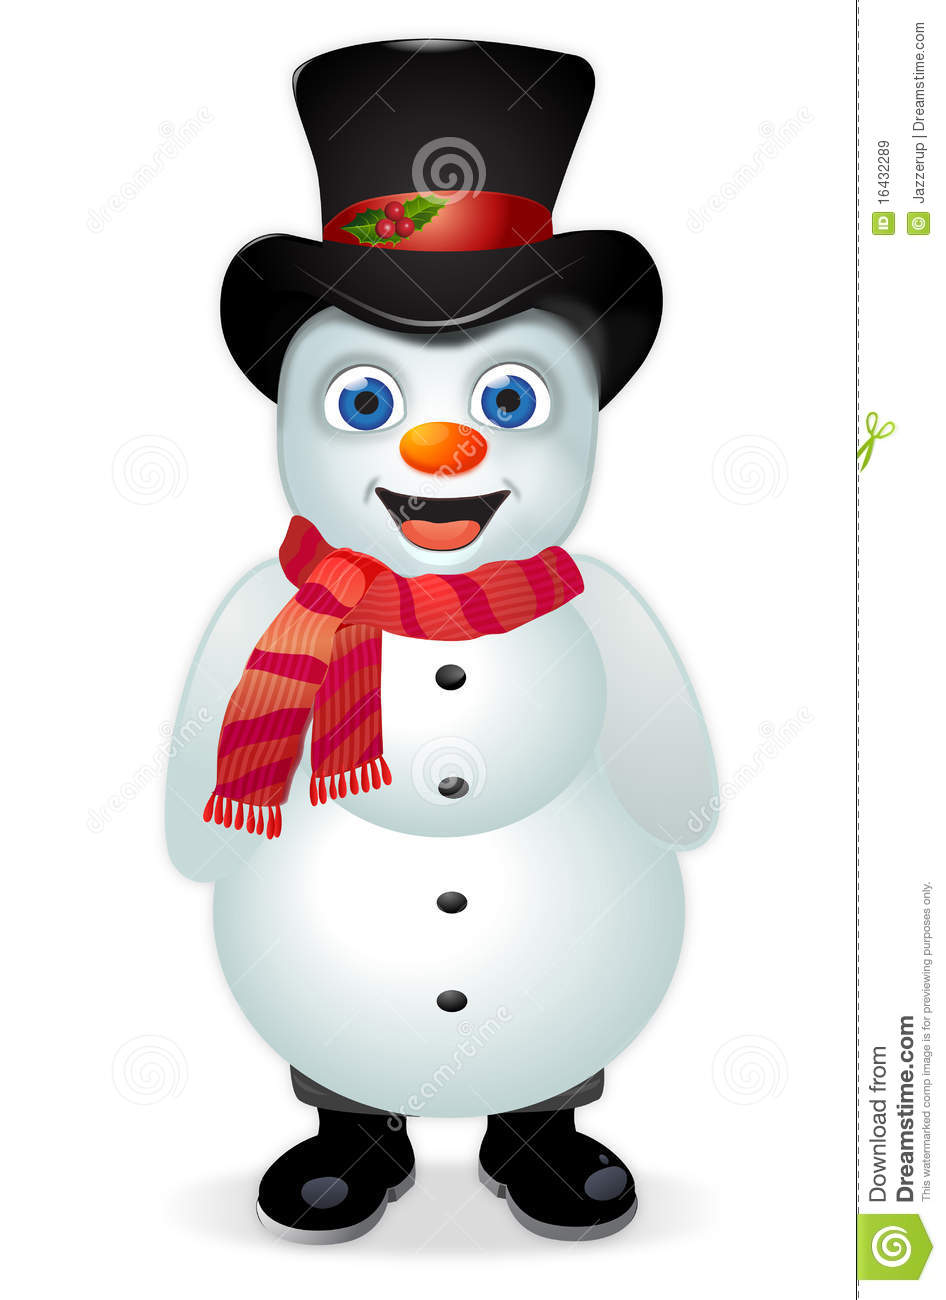 Frosty The Snowman Royalty Free Stock Images - Image: 16432289